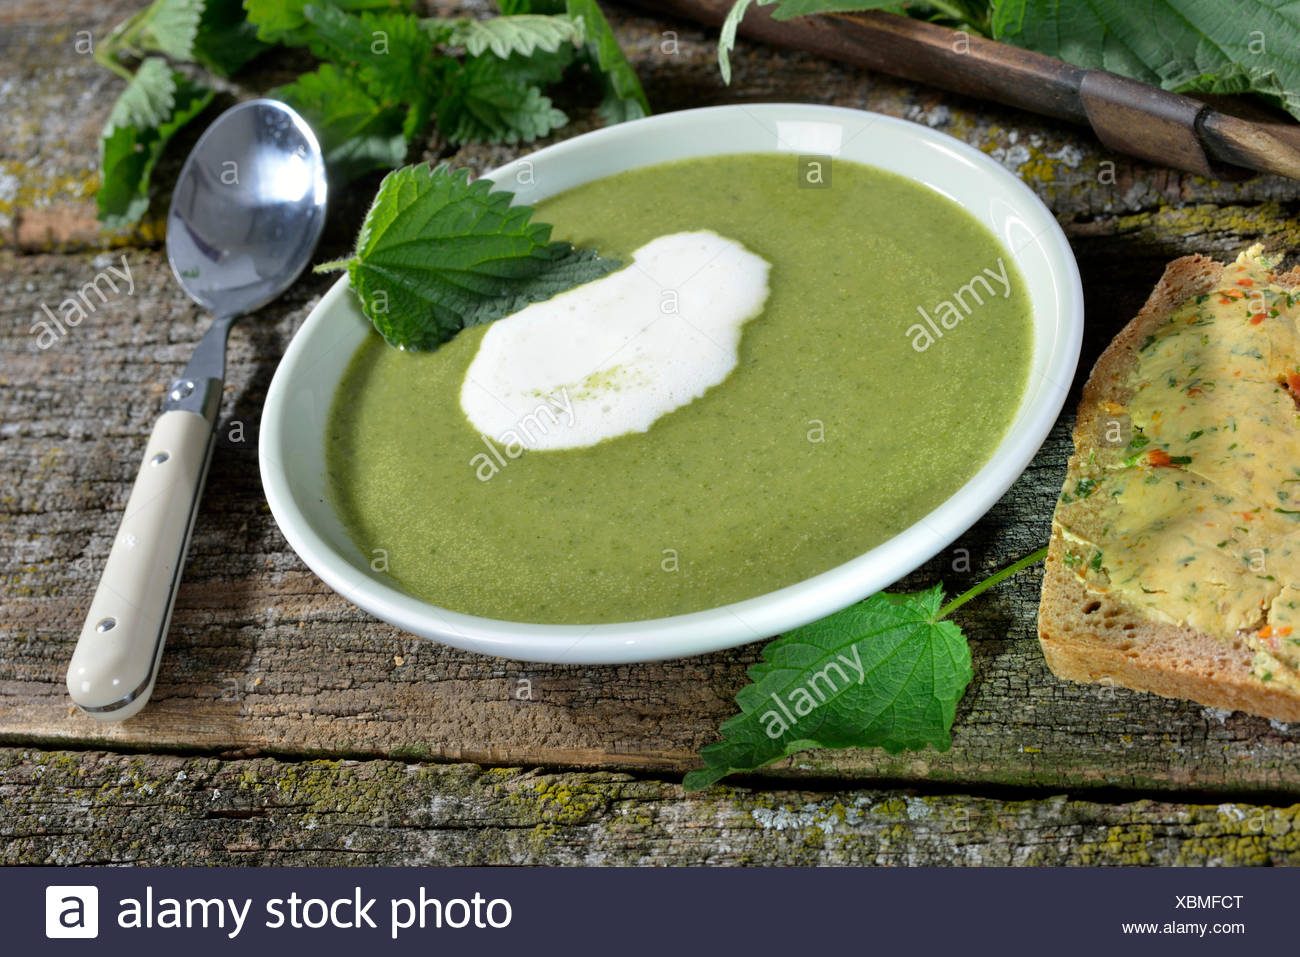 Nettle soup / (Urtica dioica) - Stock Image